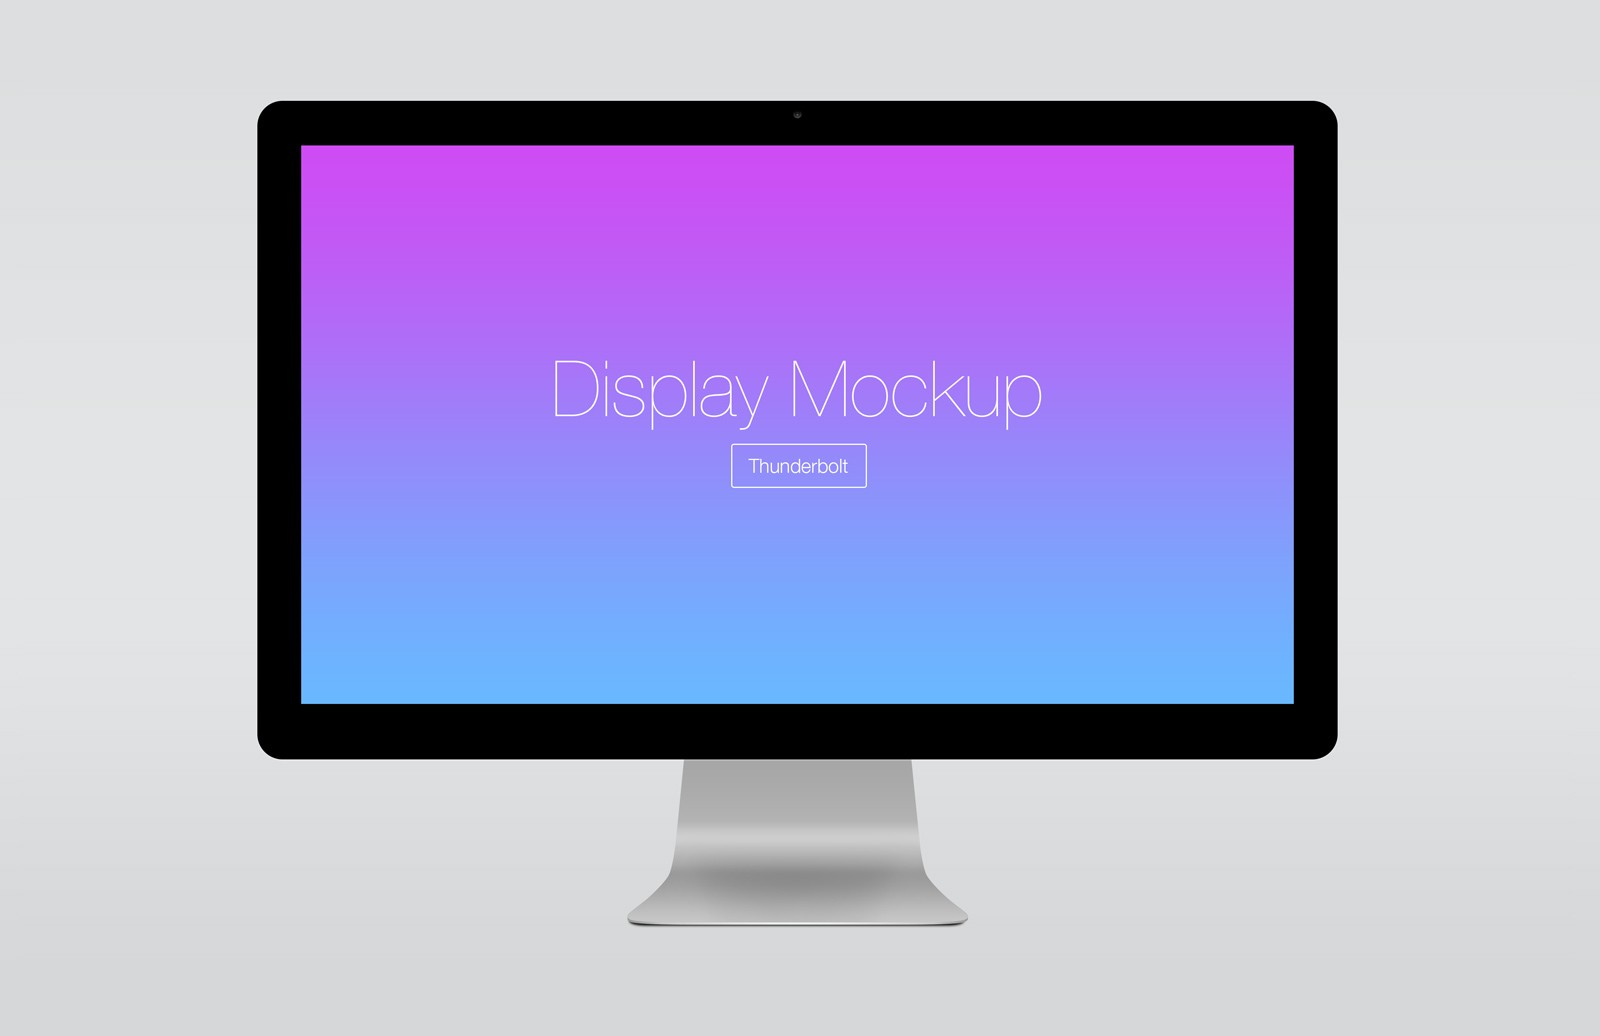 Large Angled  Thunderbolt  Display  Mockup  Preview 2